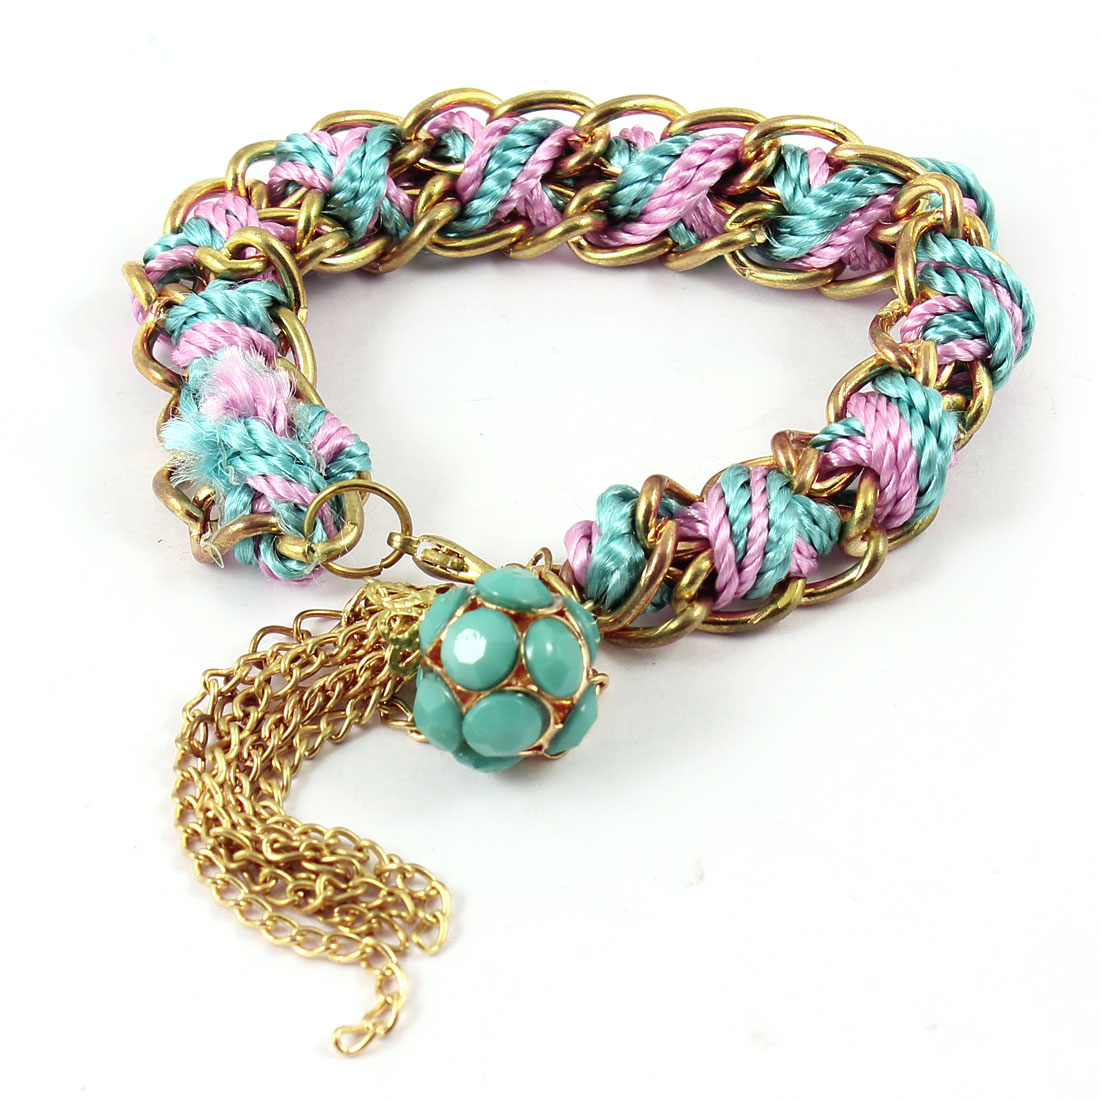 Women Girls Colorful Rope Braid Metal Chain Lobster Clasp Bracelet Decoration